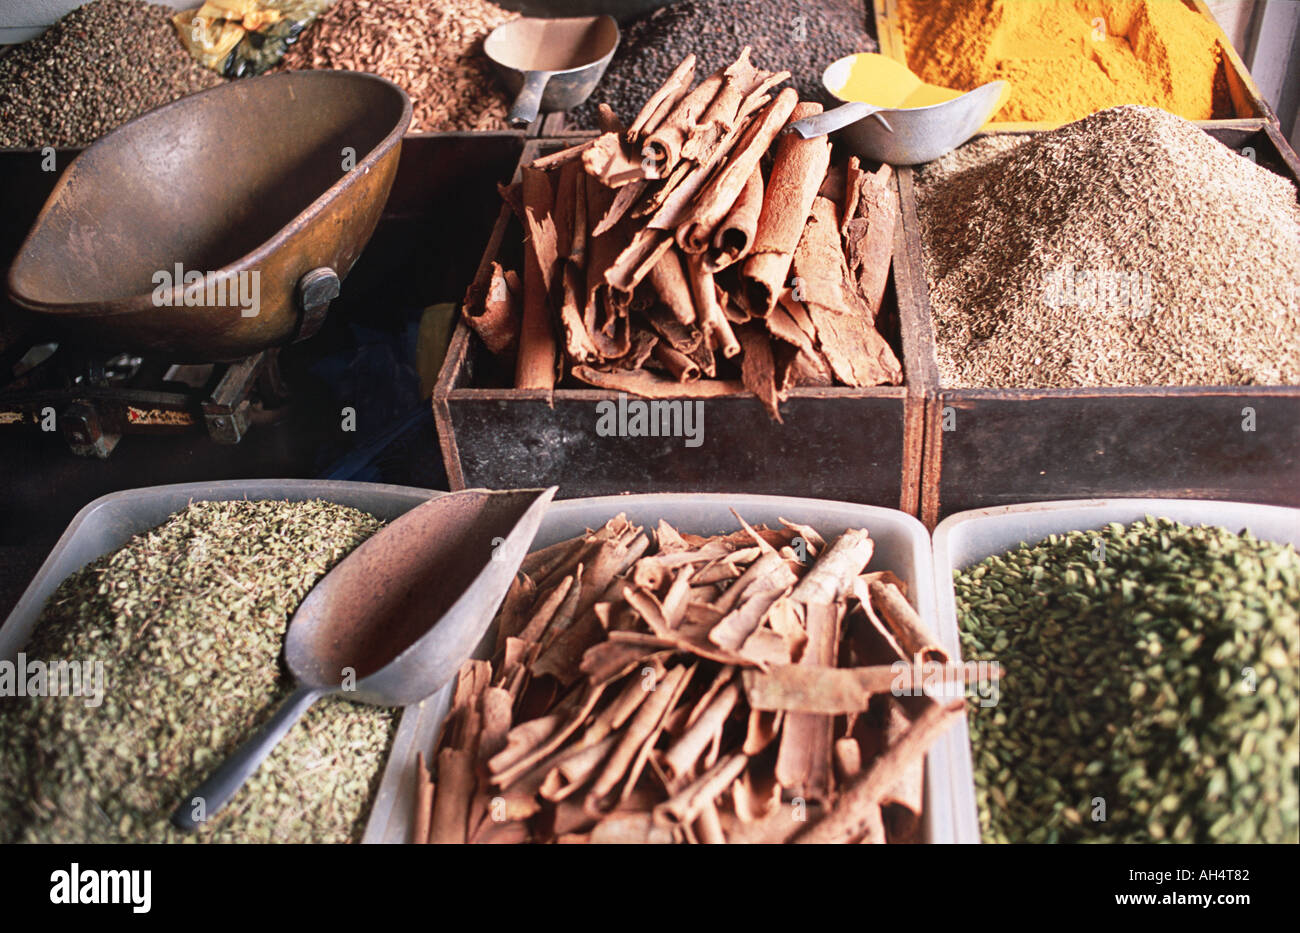 Grain spices and curry powder for sale at market Stone Town Zanzibar Tanzania Spice Tours are popular excursions E Africa - Stock Image